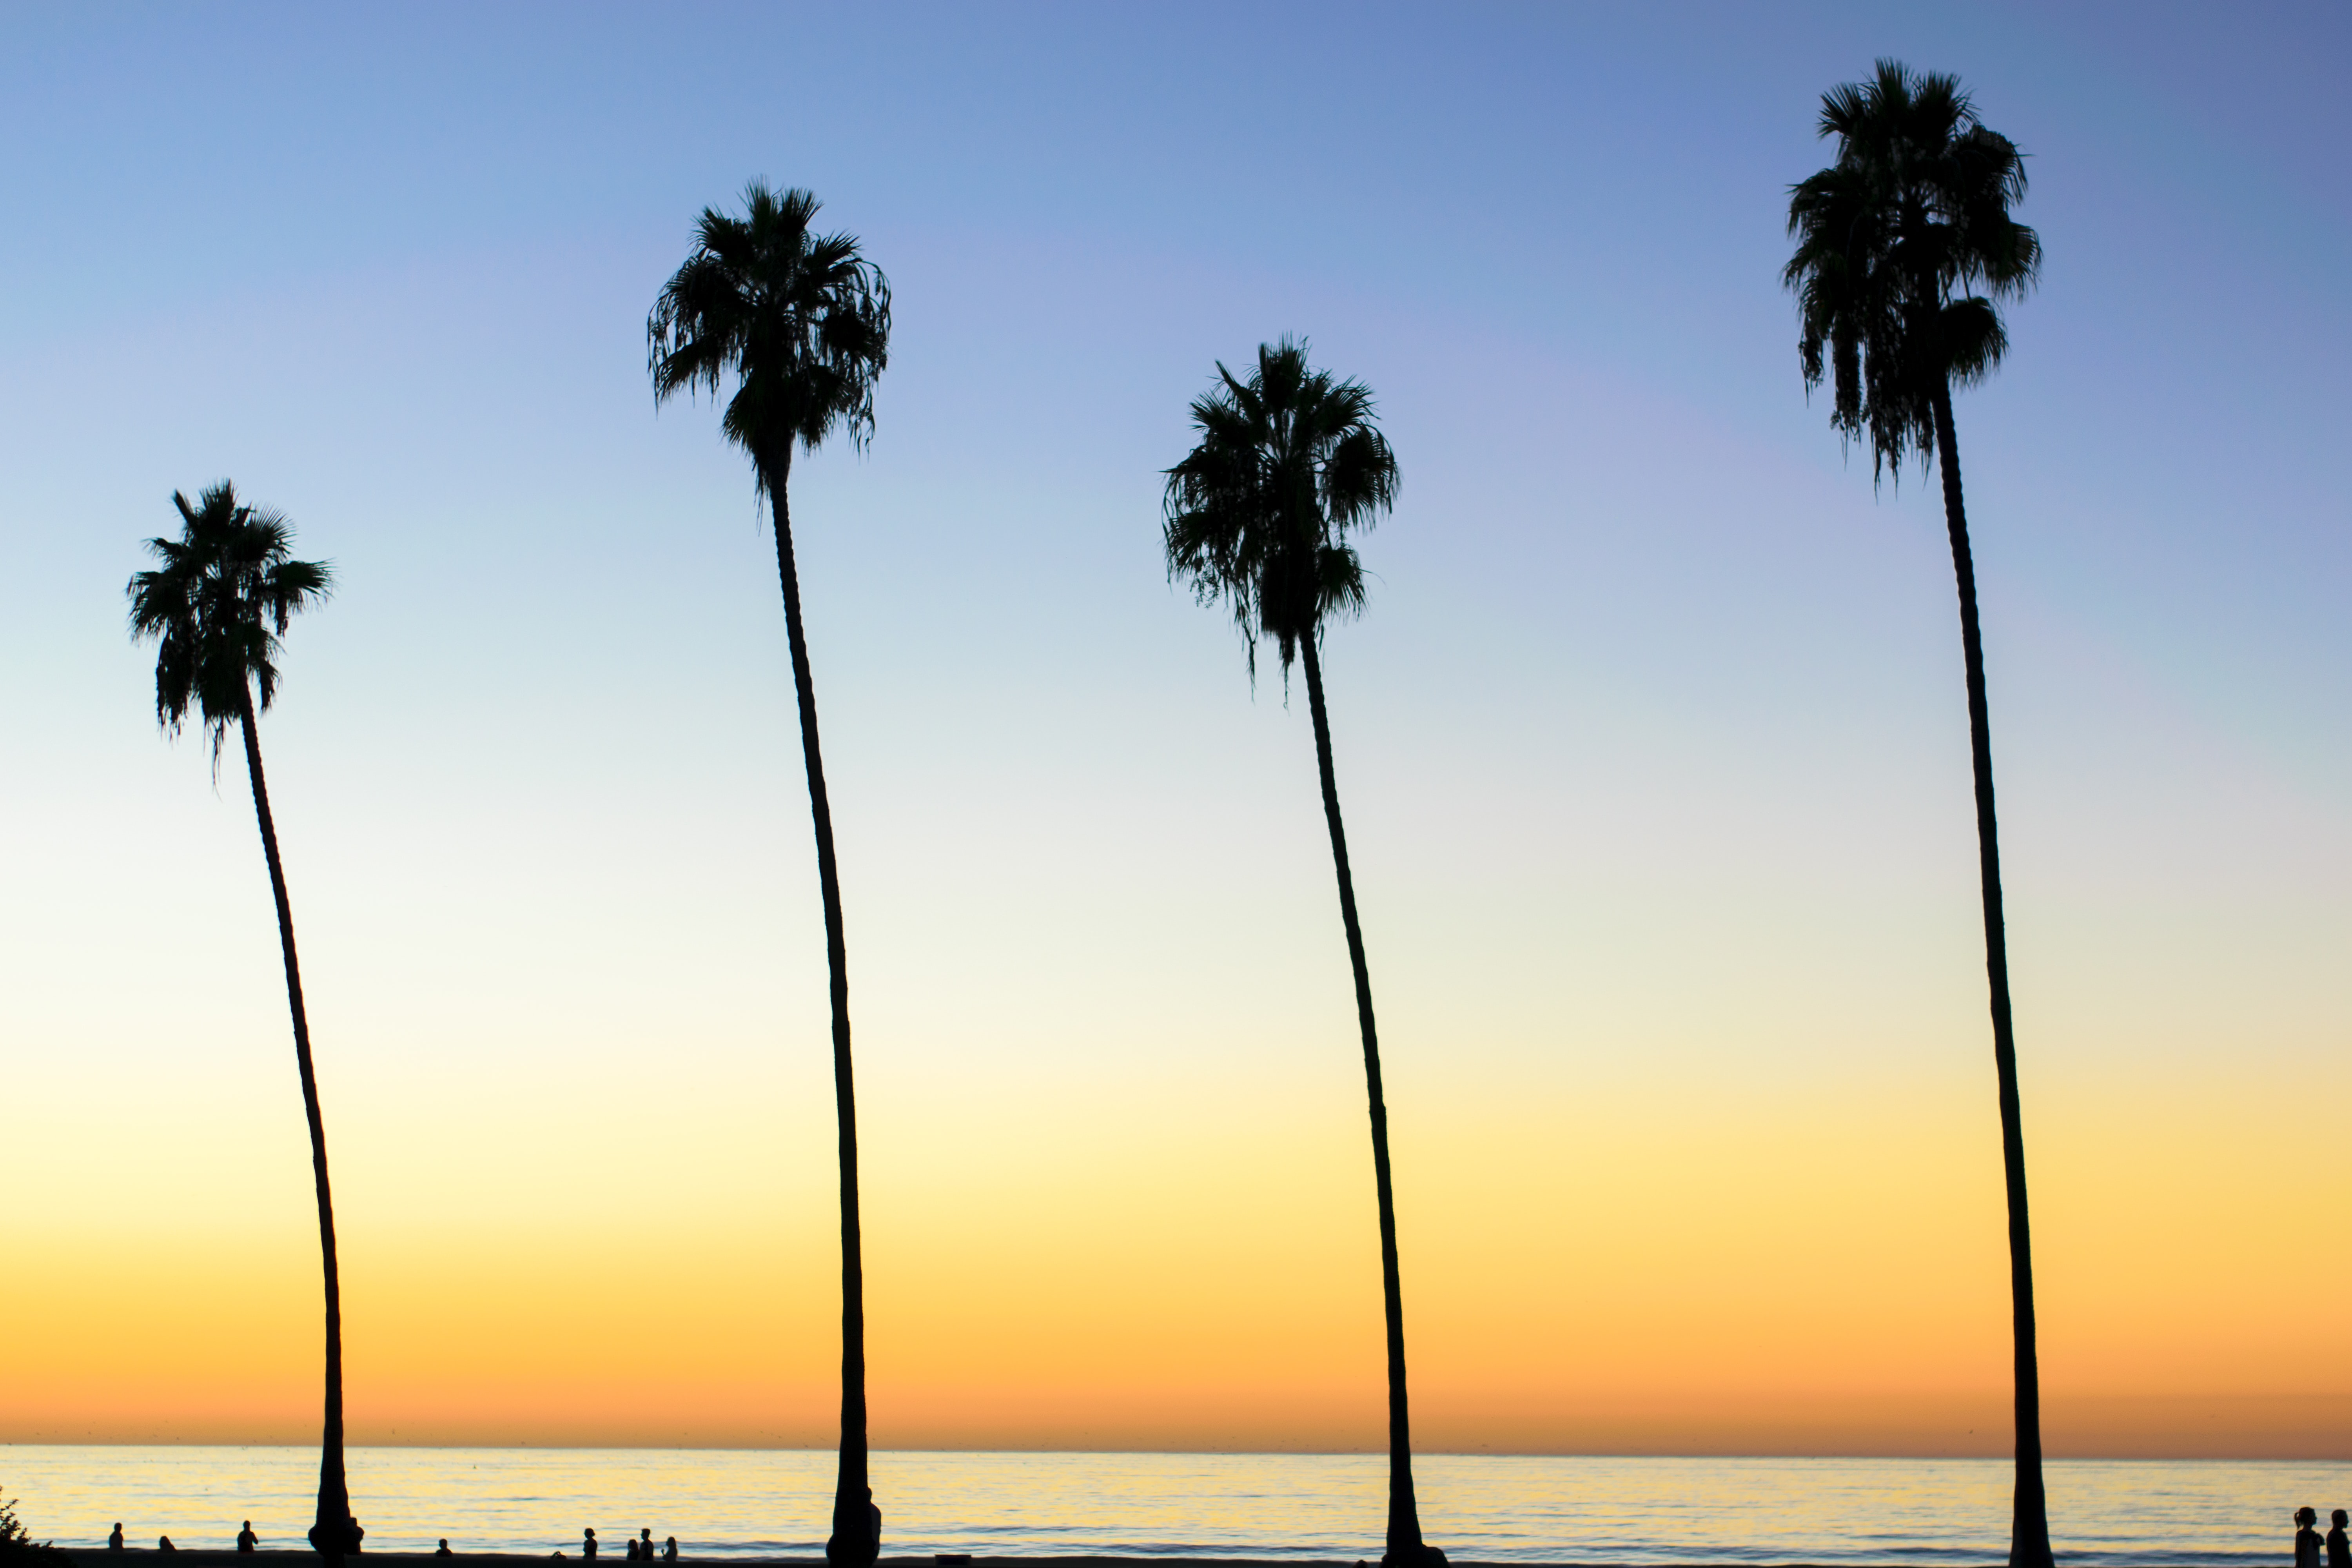 The silhouettes of four tall palm trees at sunset